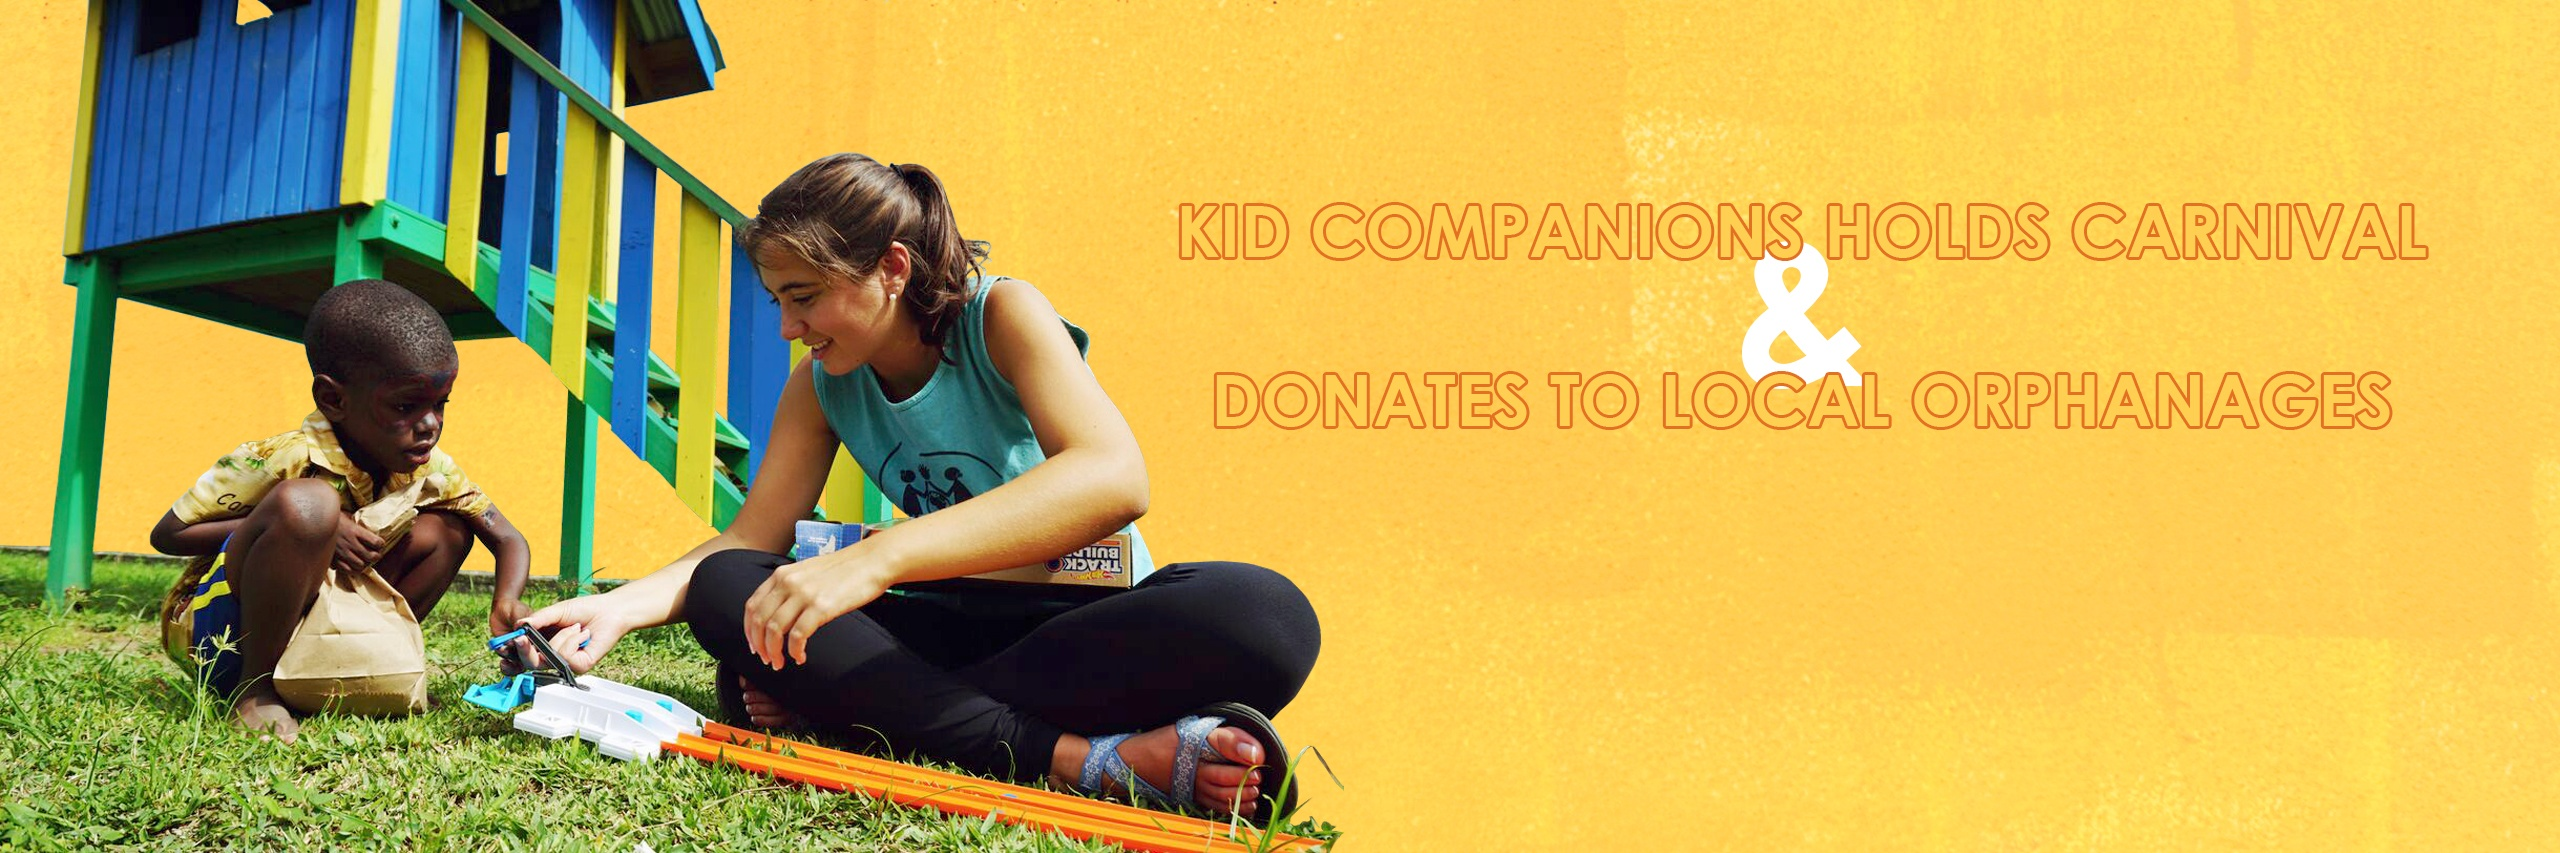 Kid Companions Holds Carnival and Donates to Local Orphanage